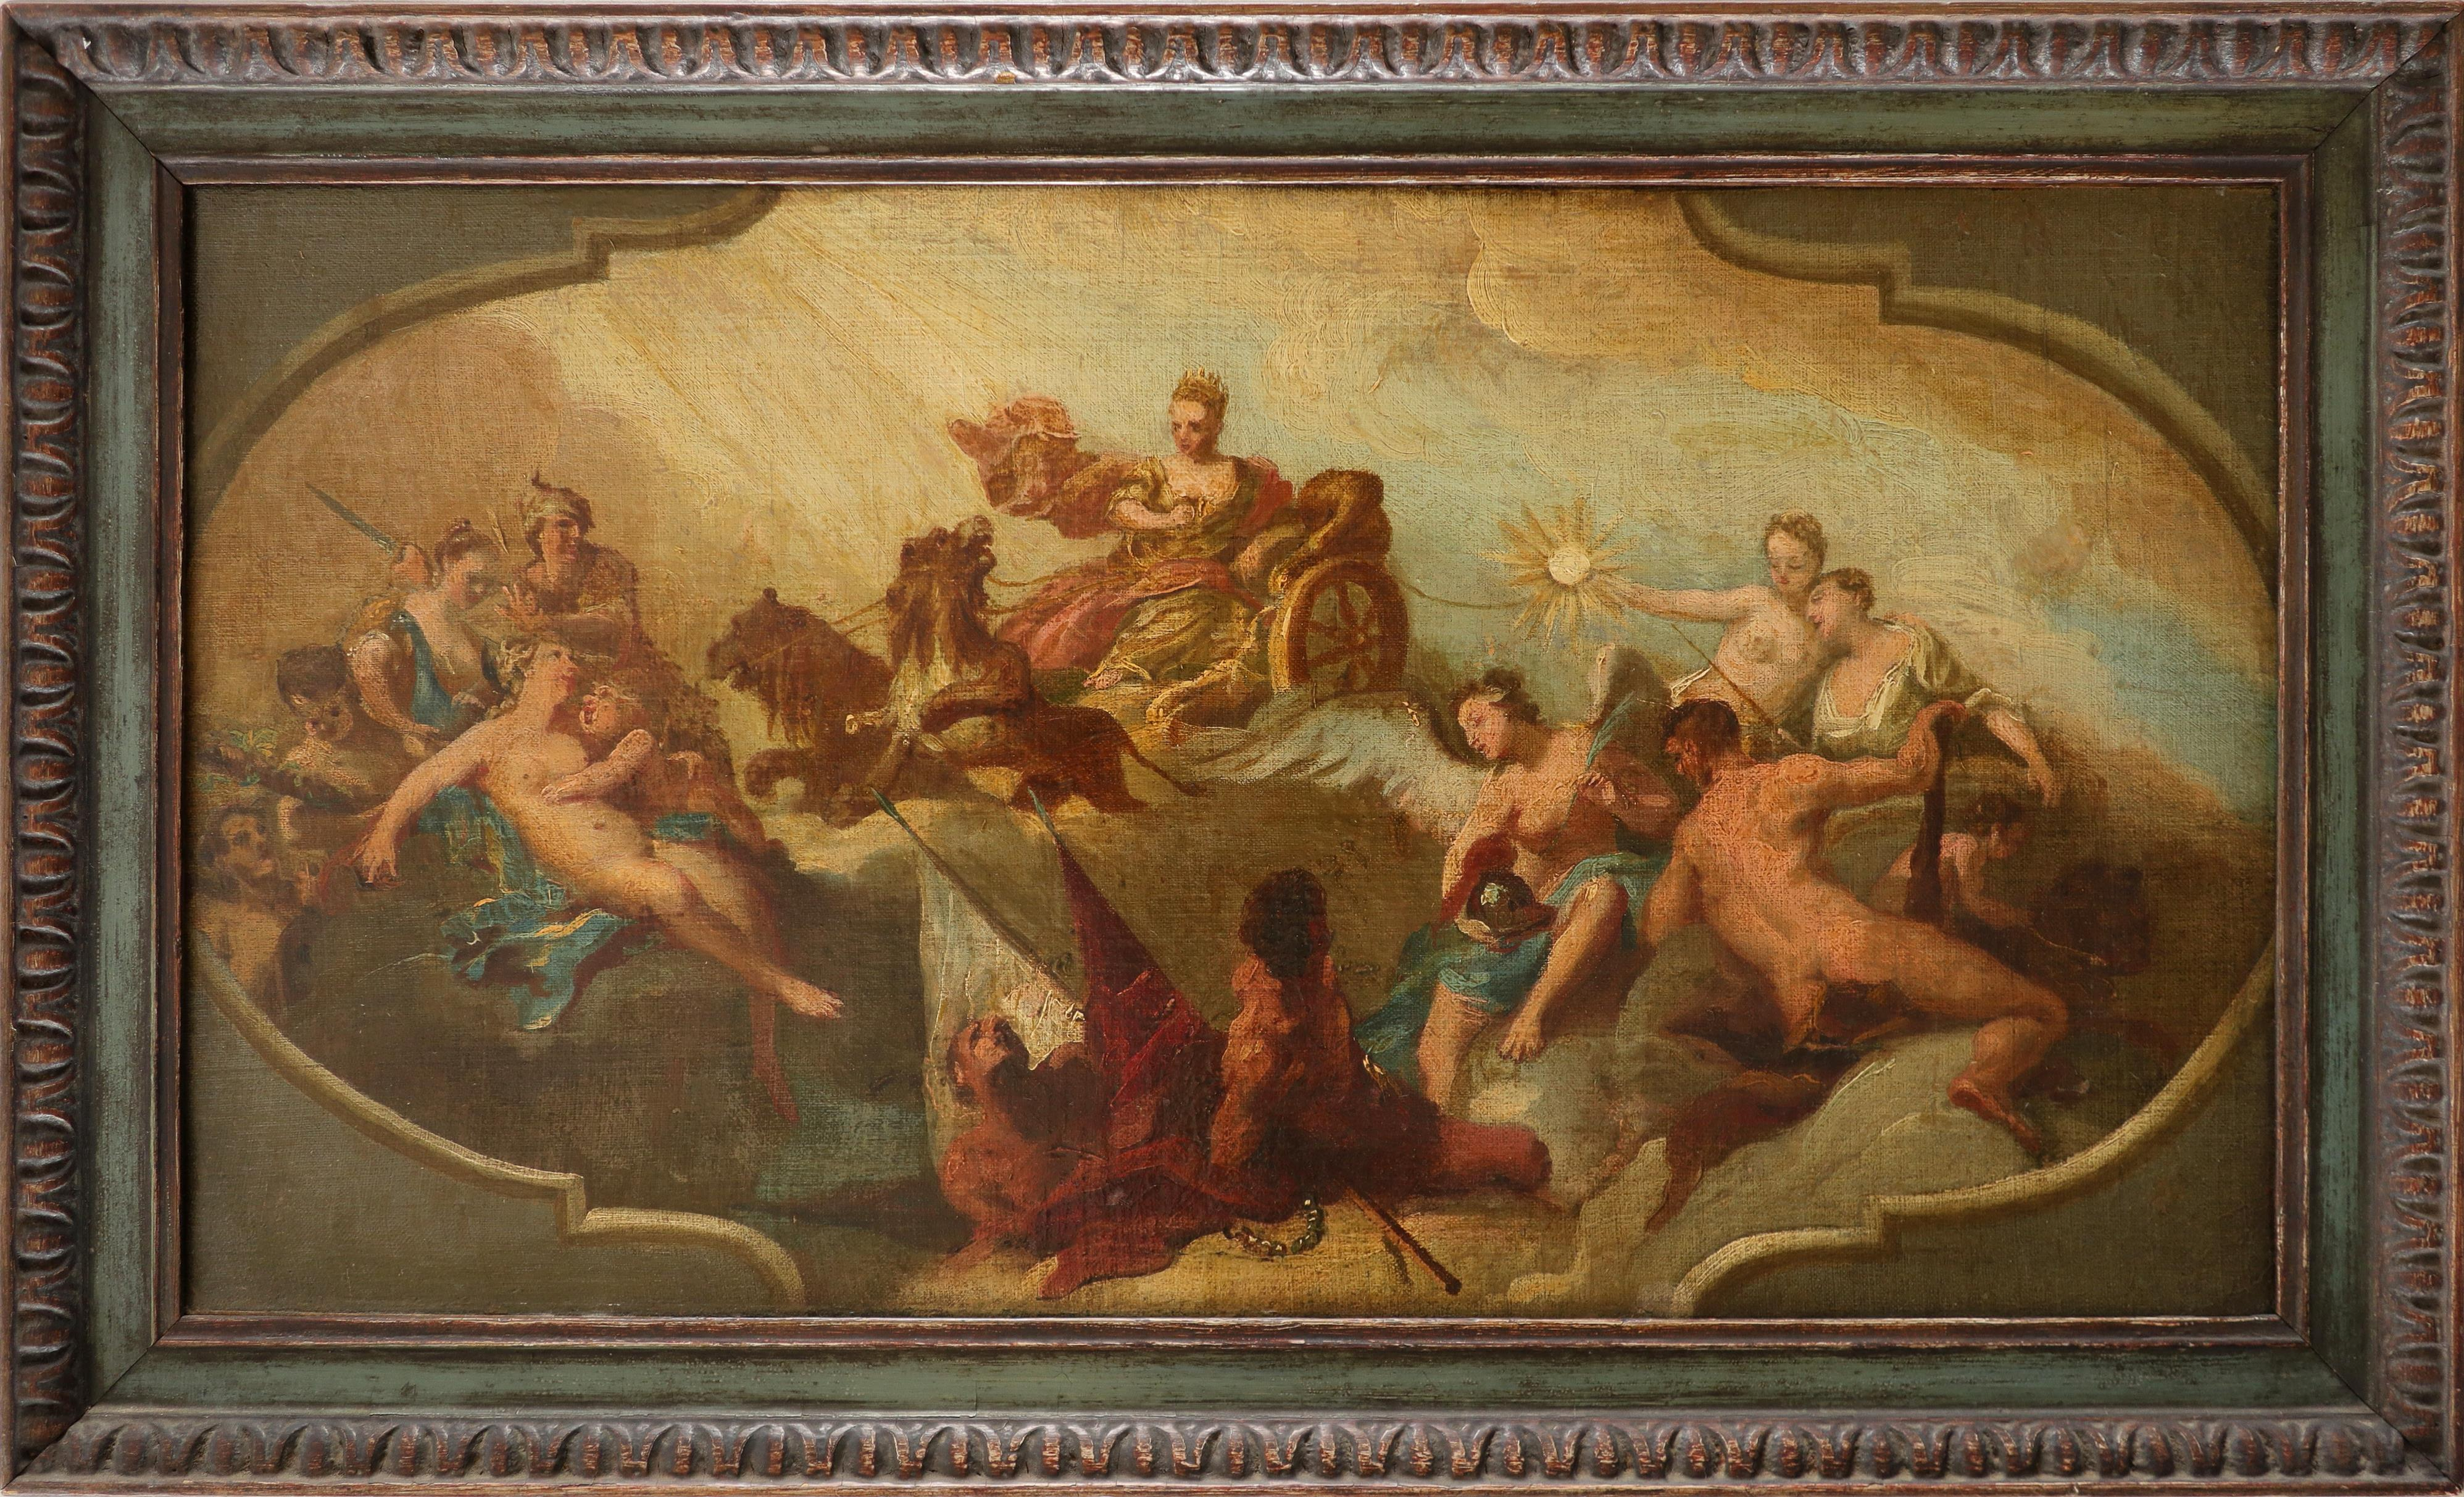 Francesco Sleter (Italian 1685-1775) The Triumph of Cybele Oil on canvas 33 x 60cm; 13 x 23½in - Image 2 of 3